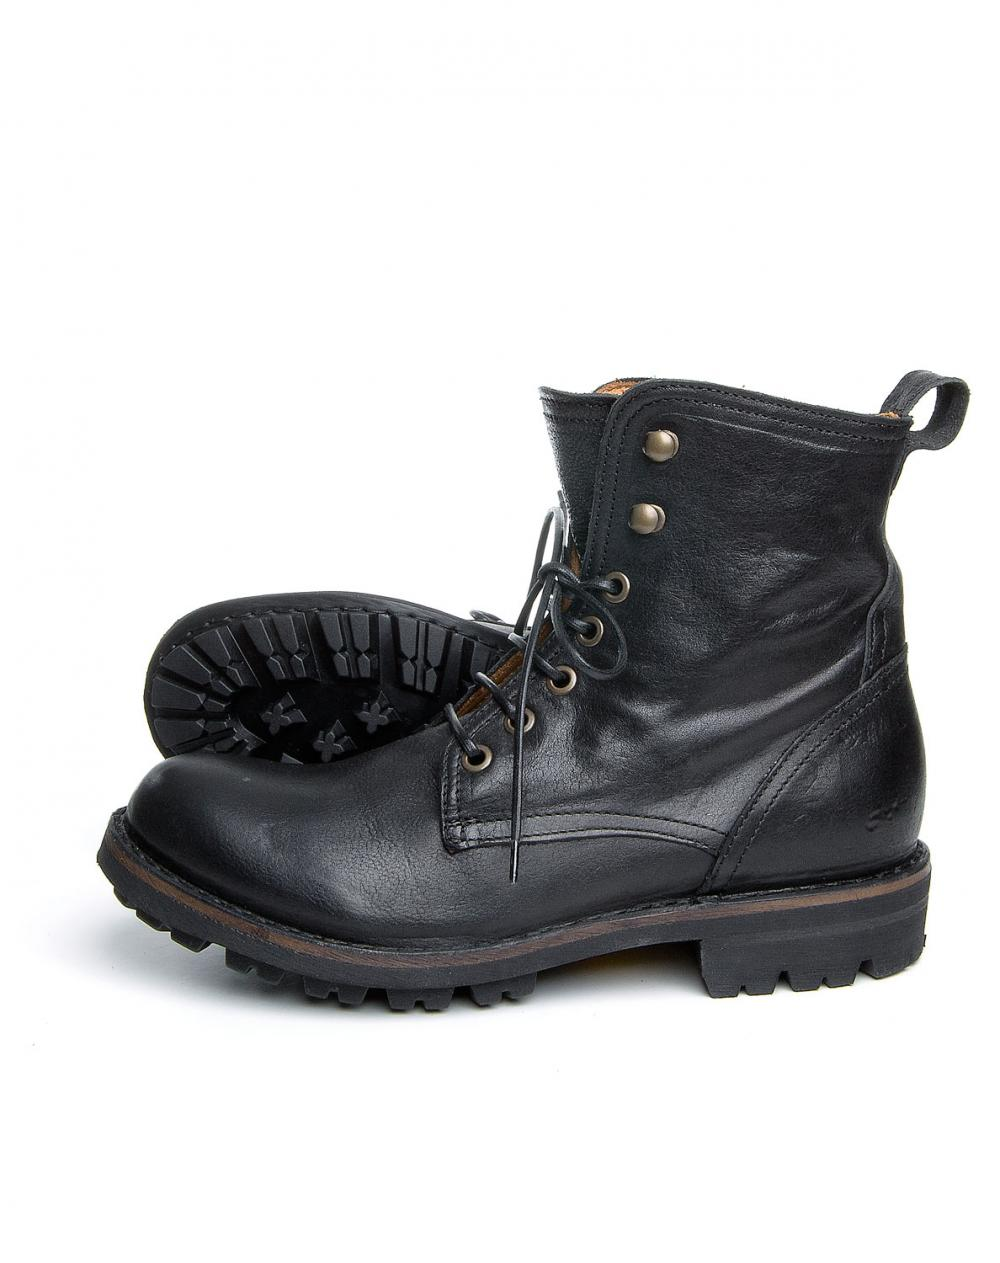 Boot Jack Jude